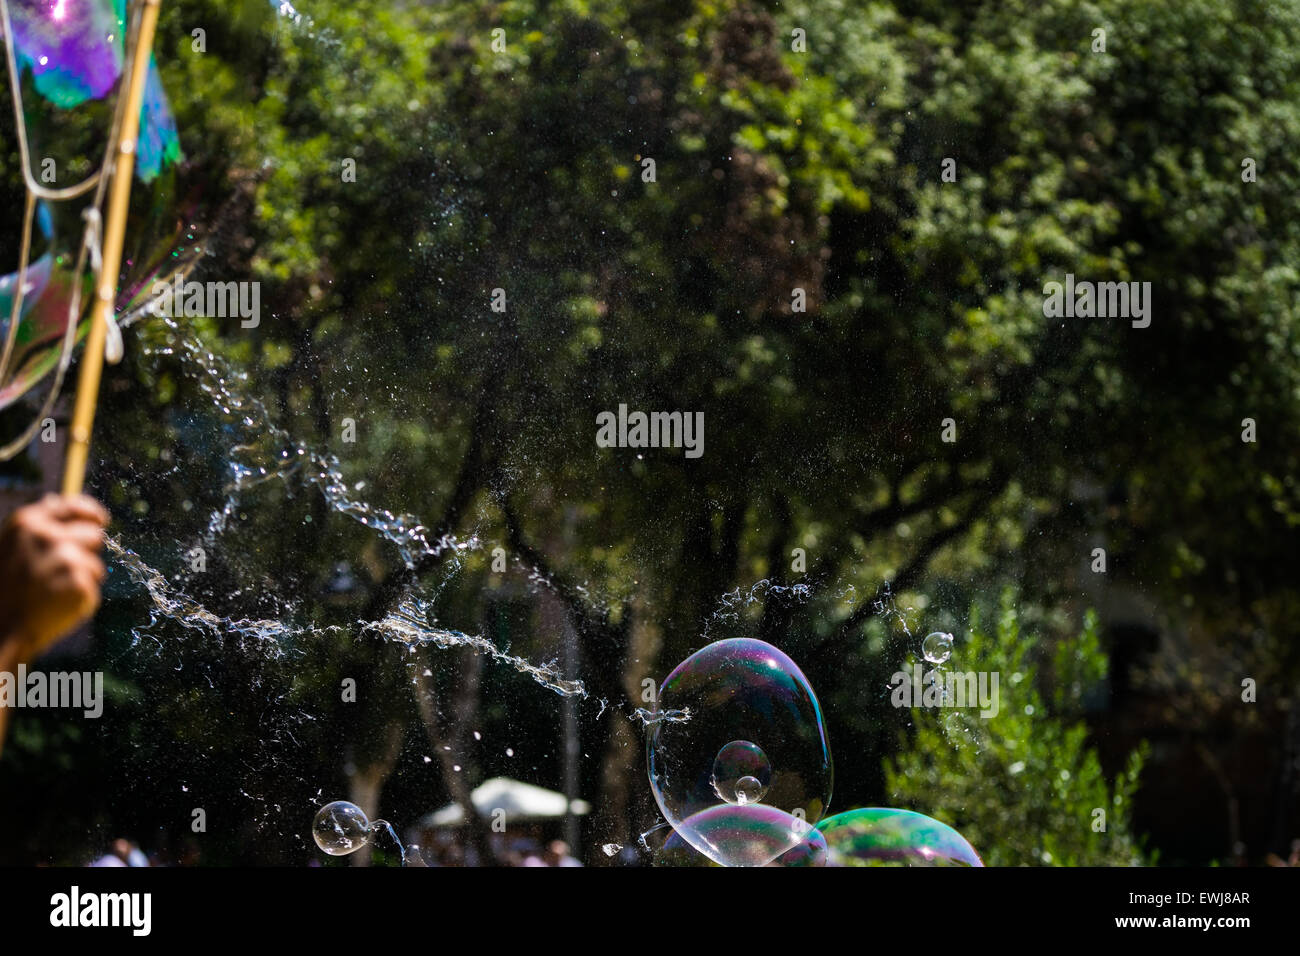 A big bubble bursting in a park in Barcelona. - Stock Image